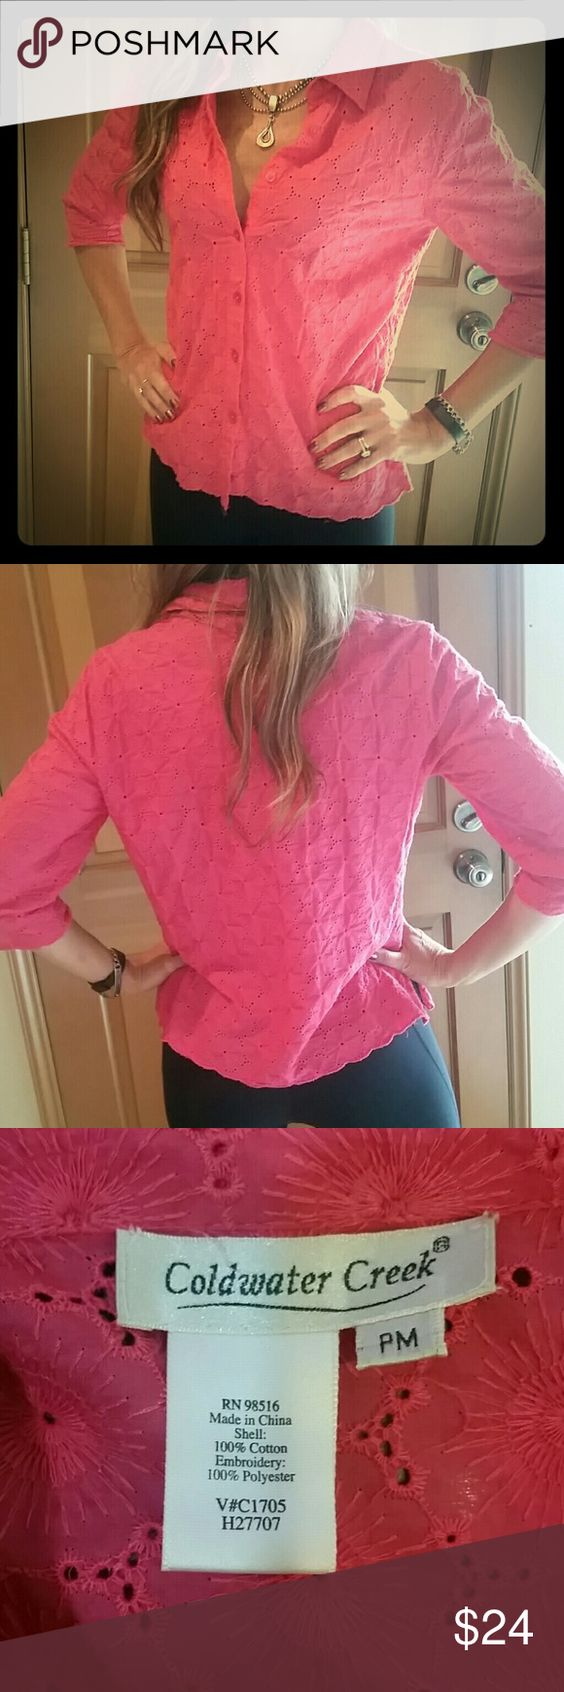 Coldwater creek hot pink blouse Delicate cutouts. Like new condition. Size PM (petite medium I believe!) Coldwater Creek Tops Blouses